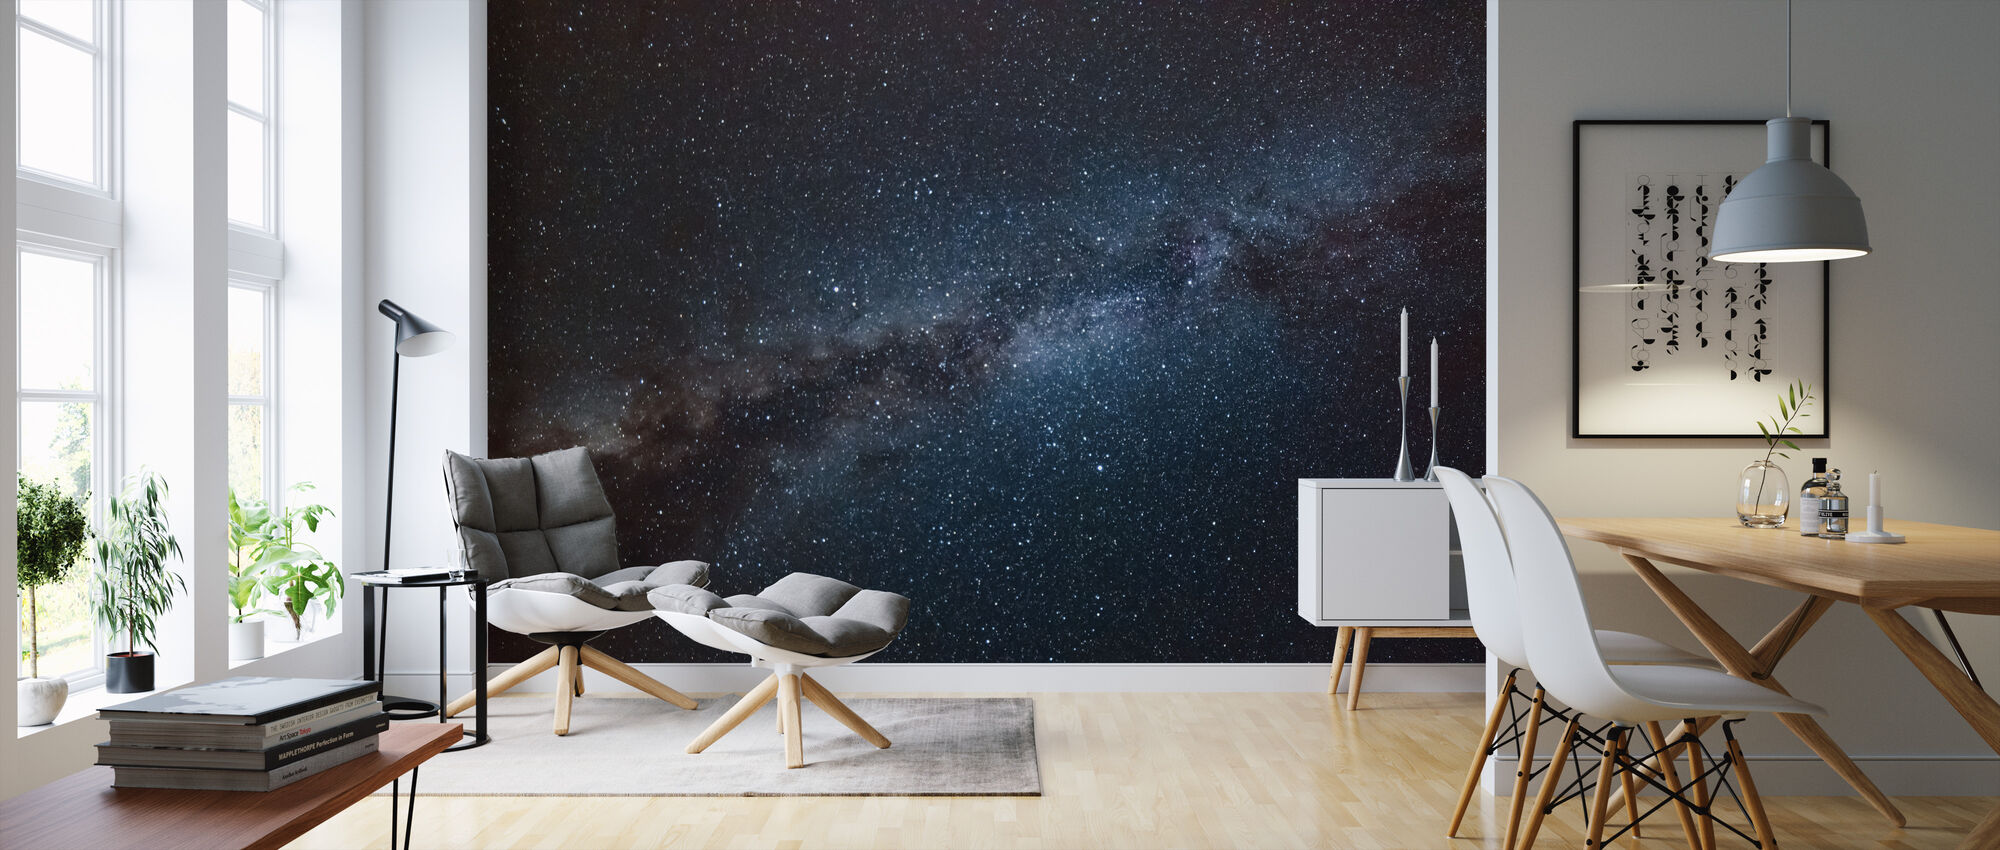 Astronomy Constellation - Wallpaper - Living Room